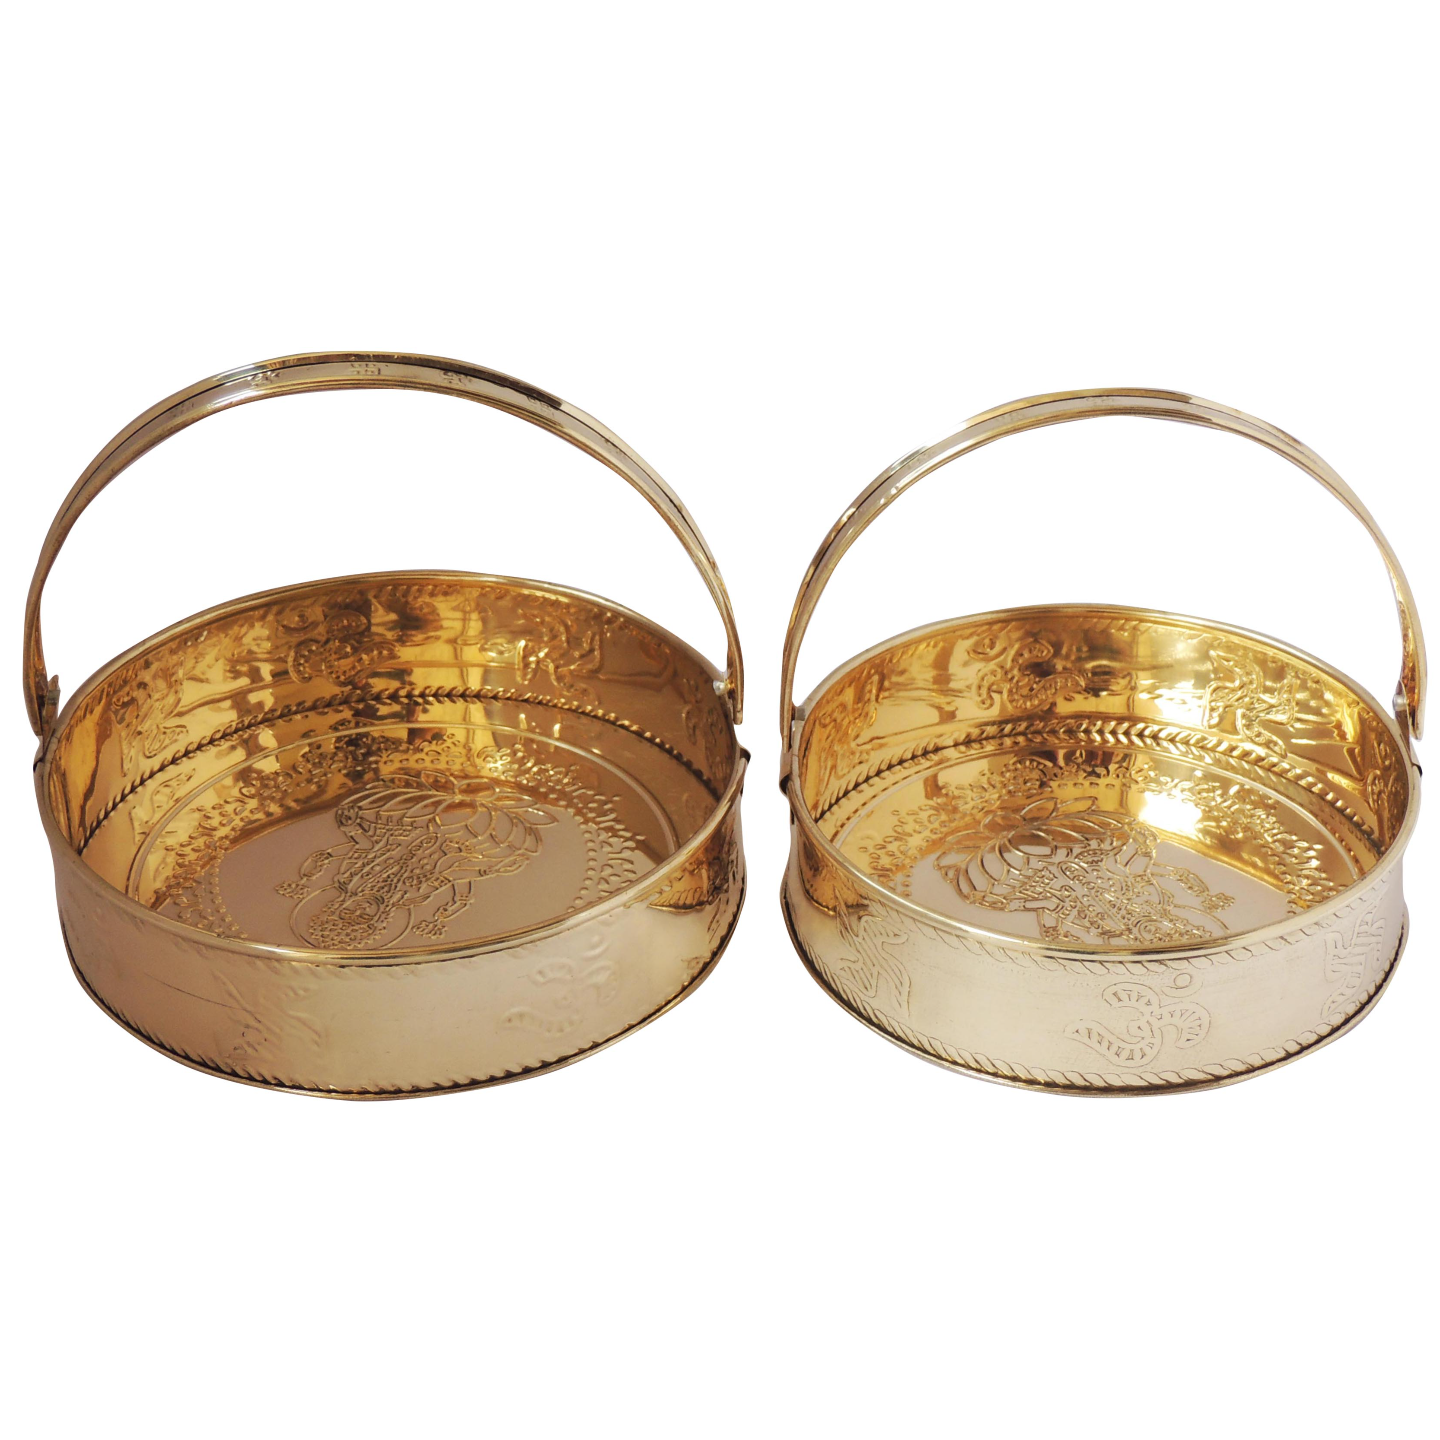 Brass Pooja Flower Basket Set of 2 - Small and Big Fool Dhalia (Z296 A)